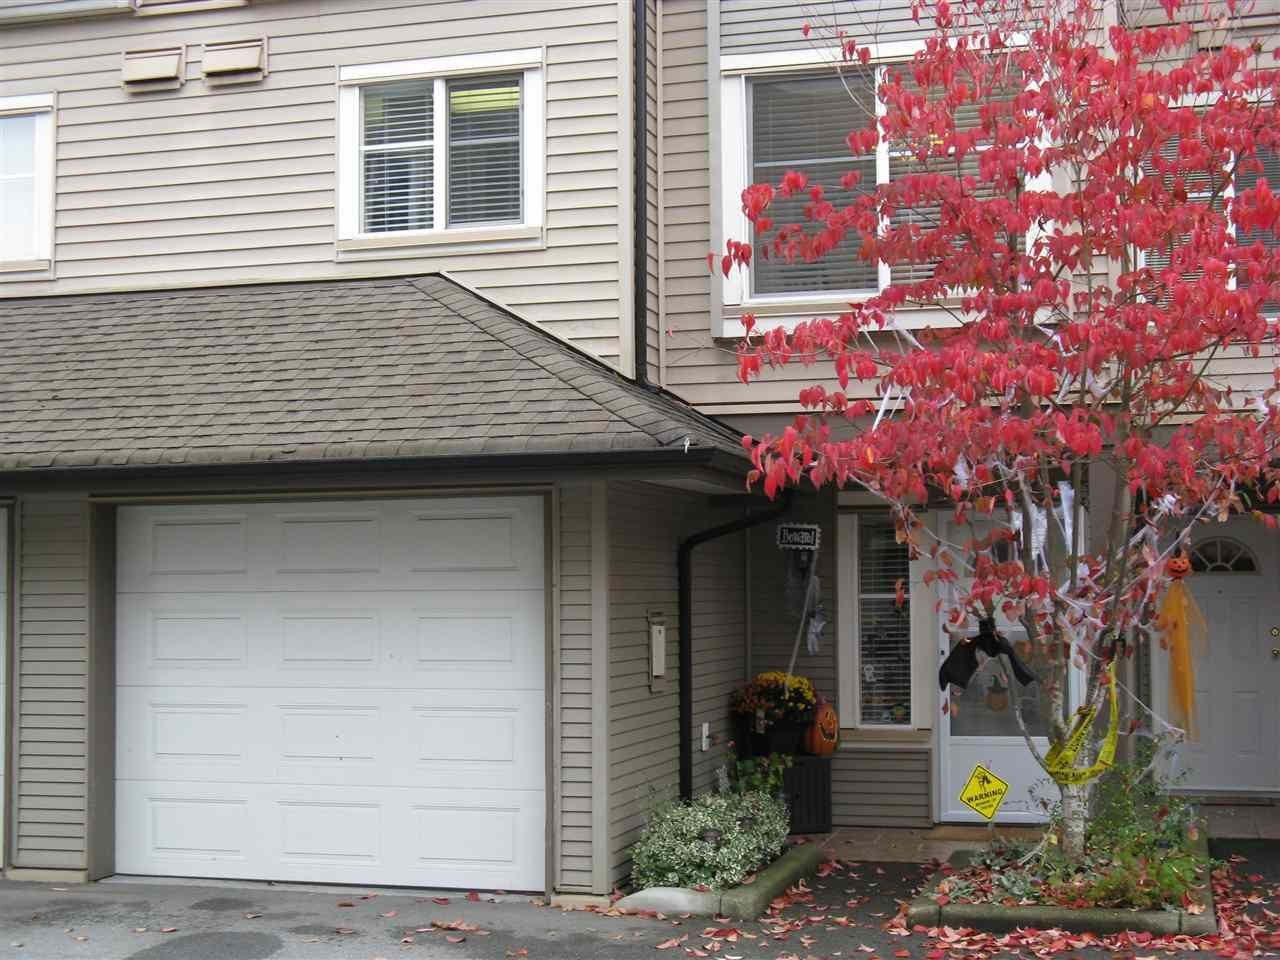 Main Photo: 2 2488 PITT RIVER ROAD in Port Coquitlam: Mary Hill Townhouse for sale : MLS®# R2011649